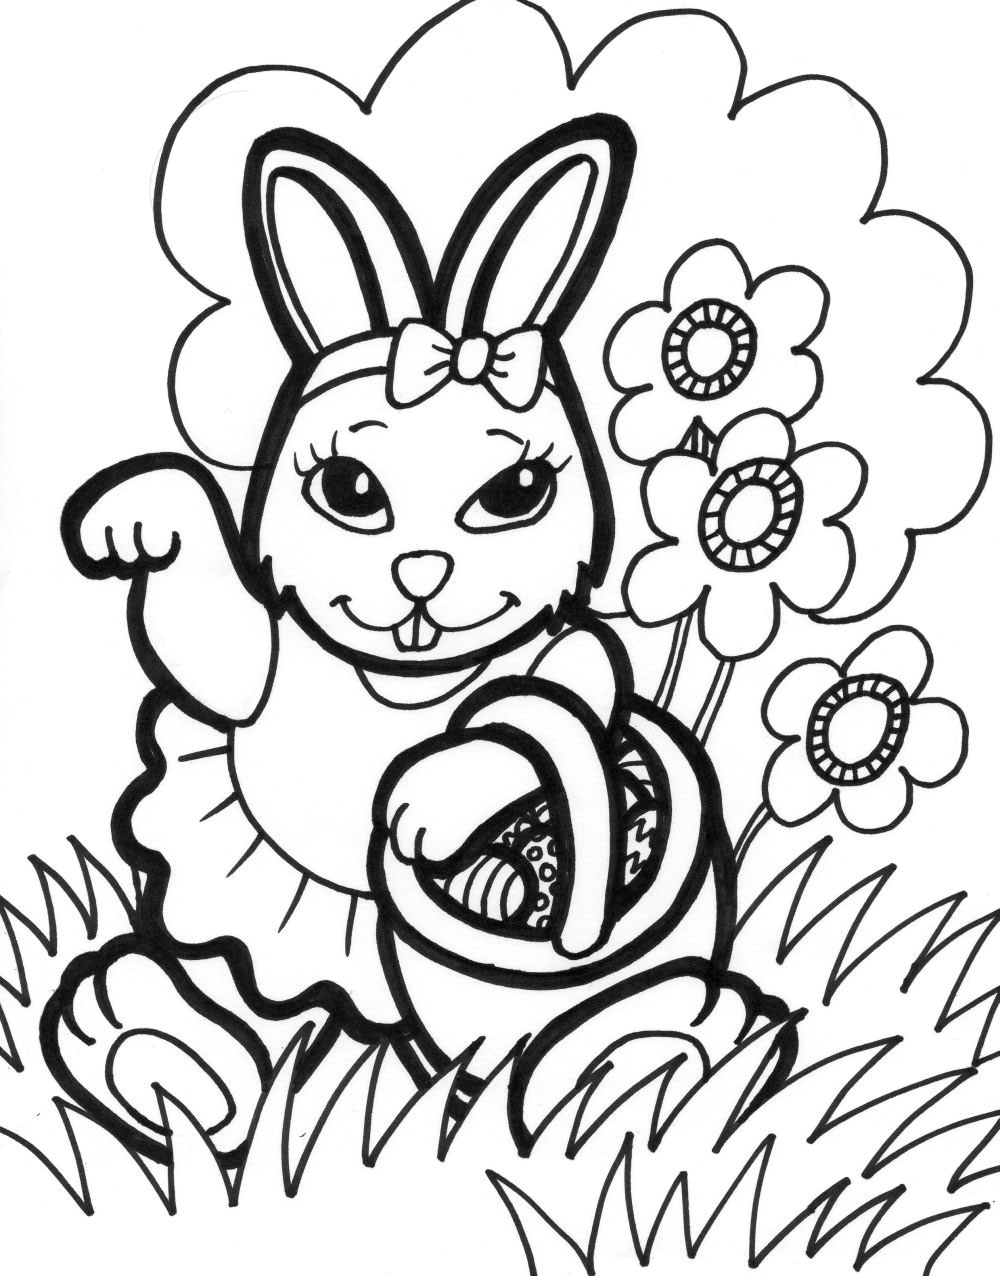 easter bunny printable coloring pages - Easter Printable Coloring Pages